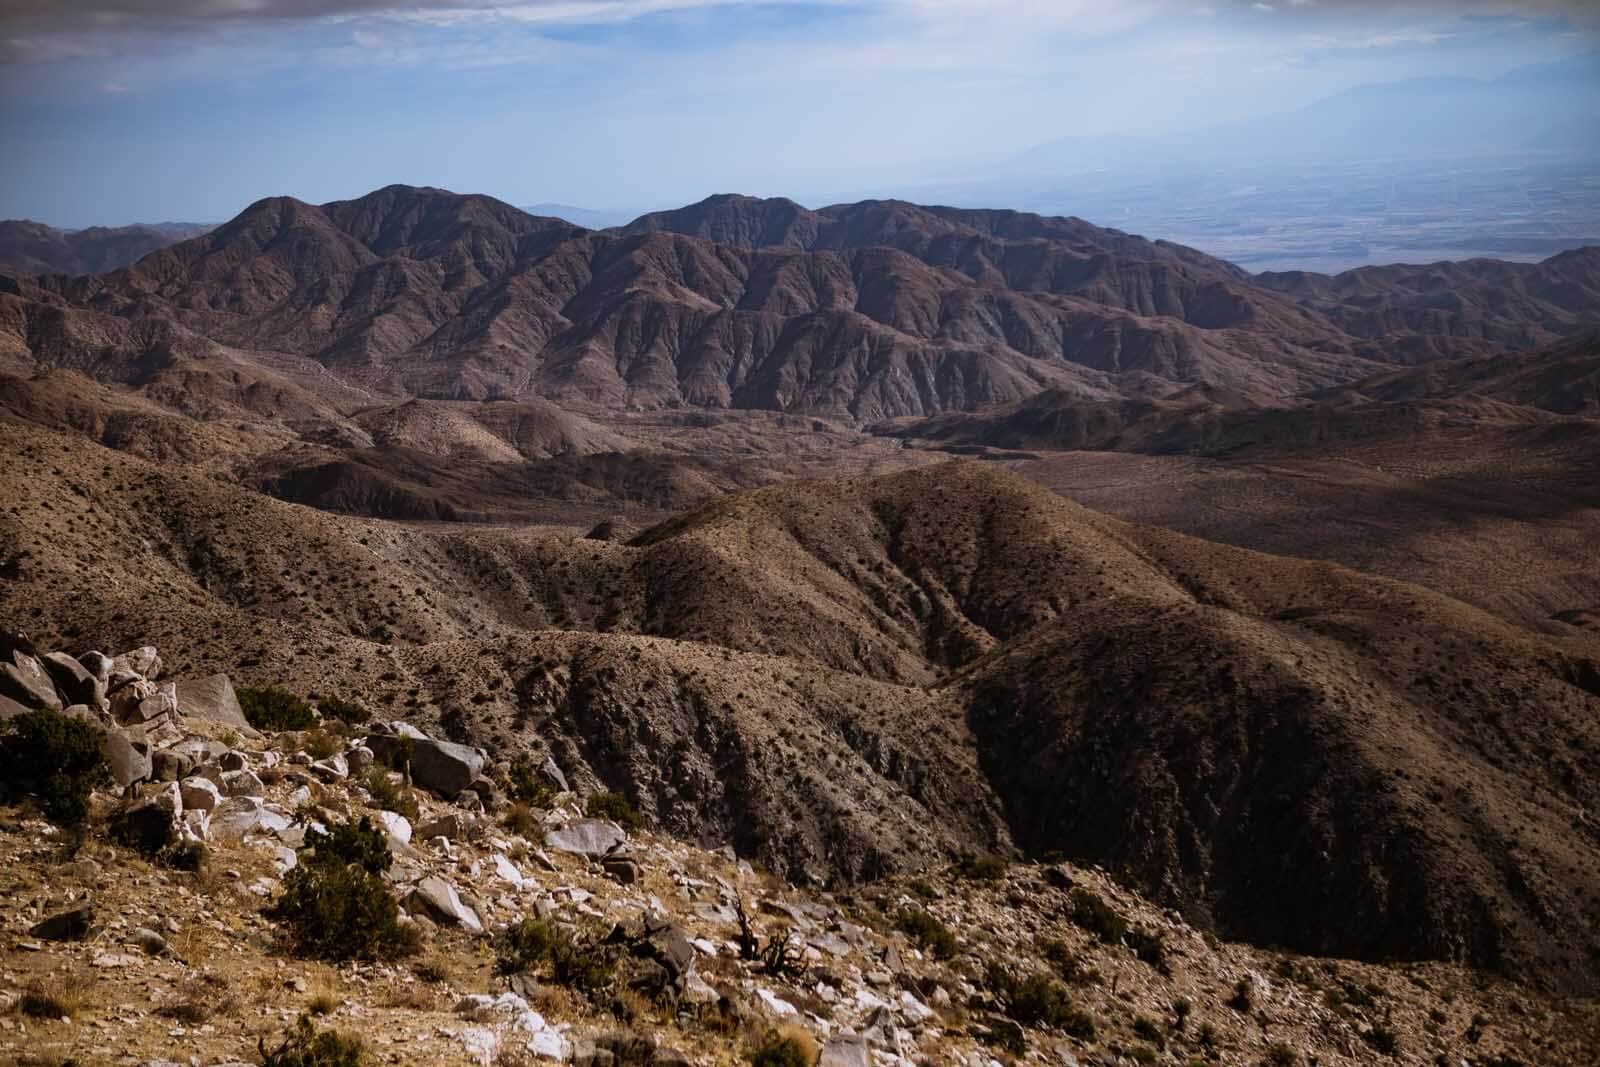 Keys View in Joshua Tree National Park